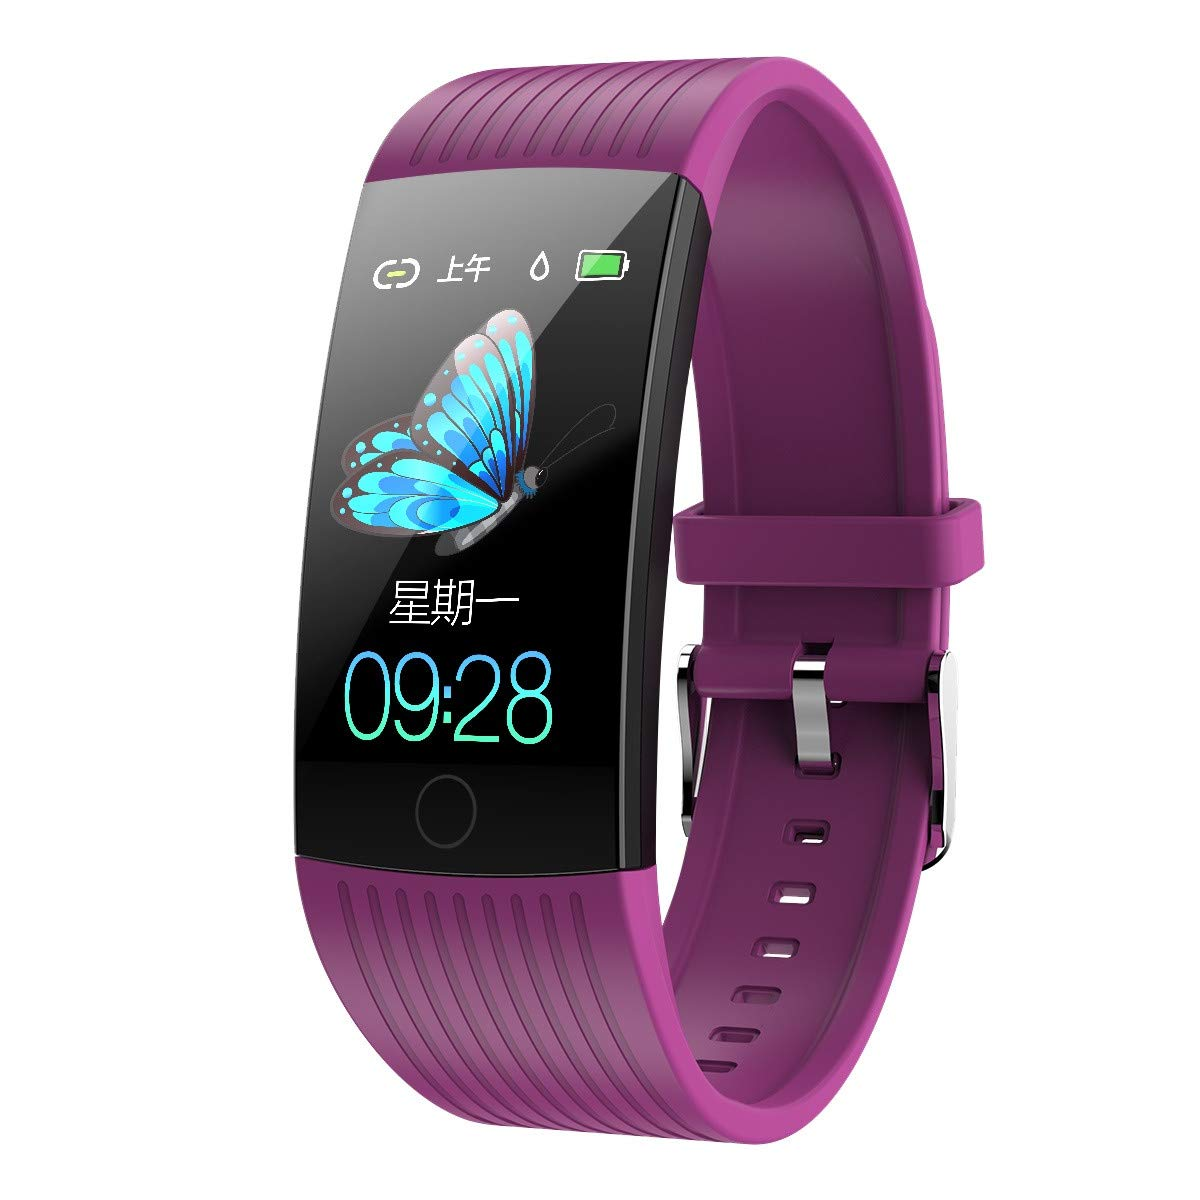 Opef Q18 Fitness Tracker HR, Activity Tracker Watch with Heart Rate Monitor, Water Resistant Smart Bracelet with Calorie Counter Pedometer Watch for Android and iOS Y6 Pro (Purple) by Opef